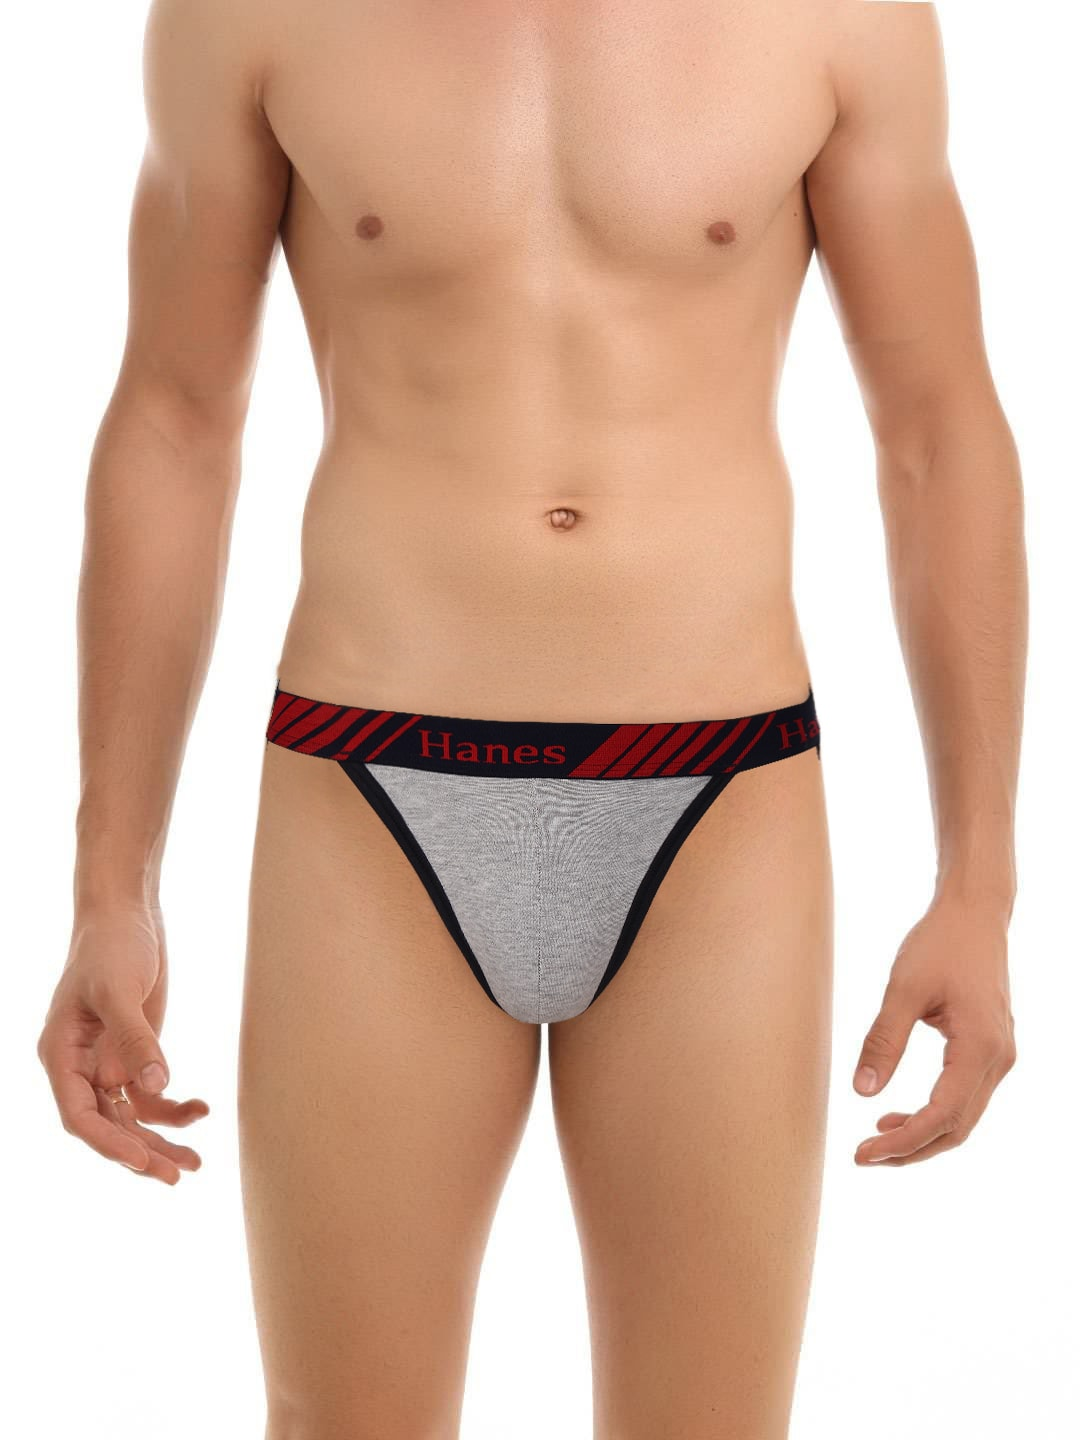 Hanes string bikini for men